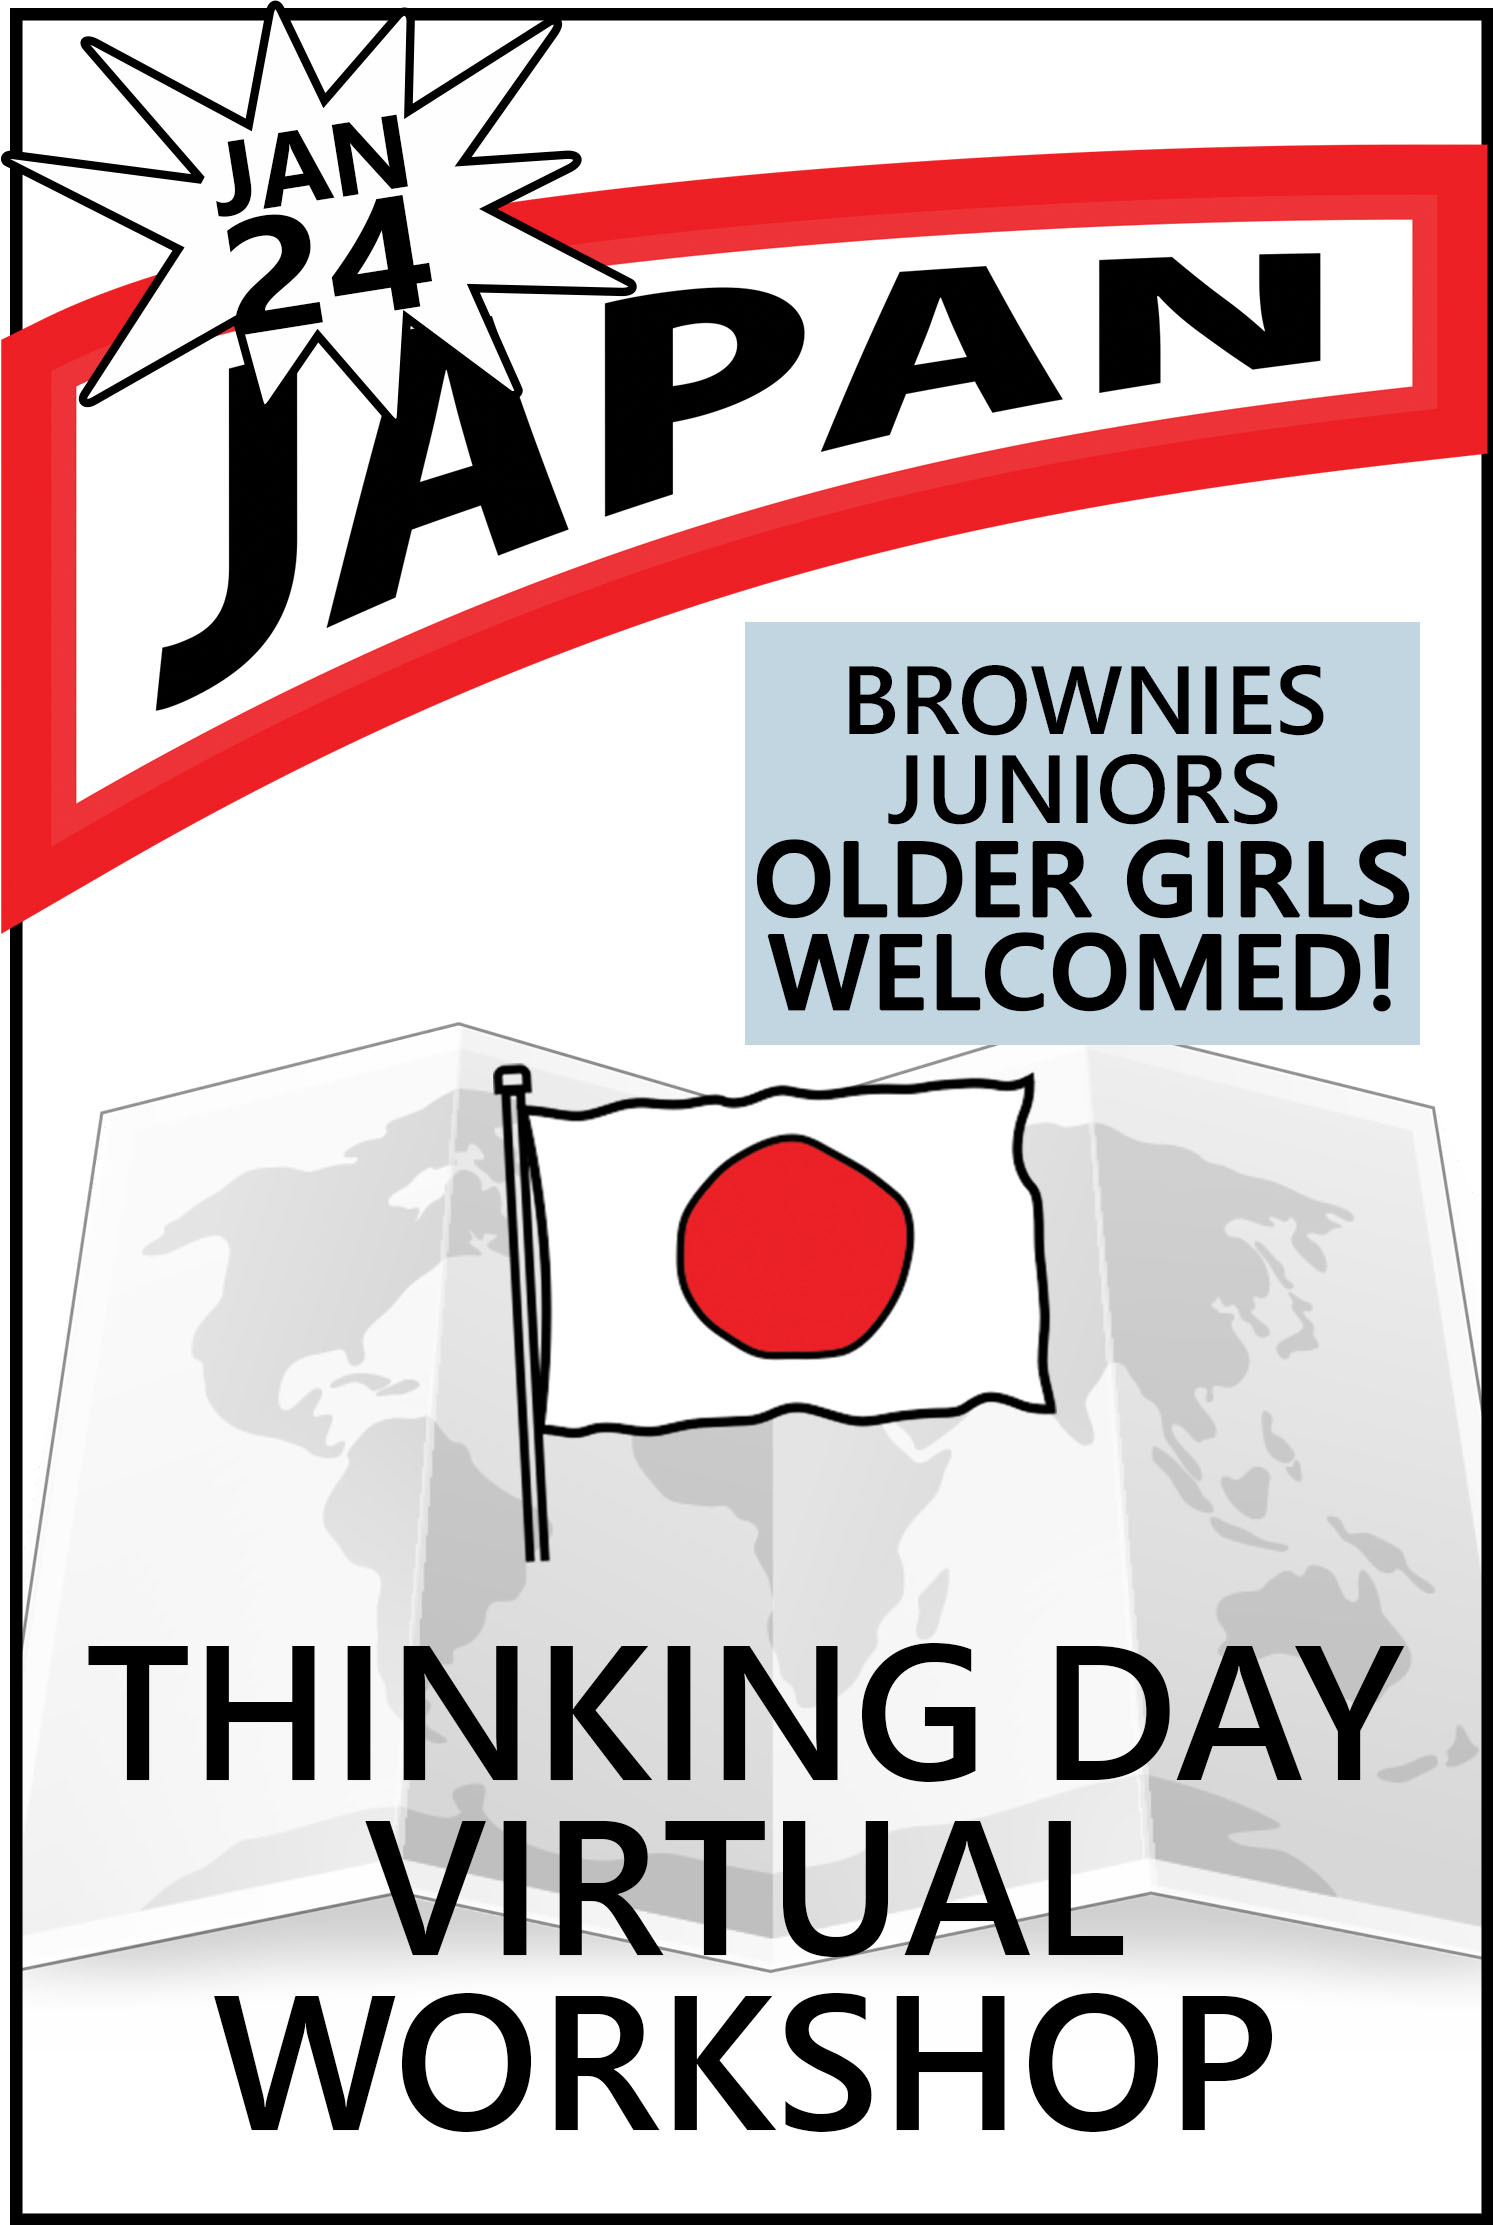 Explore Japanese traditions, food, clothing, customs, and more. The price includes supplies and an embroidered patch! #makingfriends #virtualclass #thinkingday #virtualworkshop #onlineworkshop #girlscouts #gsonline #japan #thinkingdayjapan #culture via @gsleader411